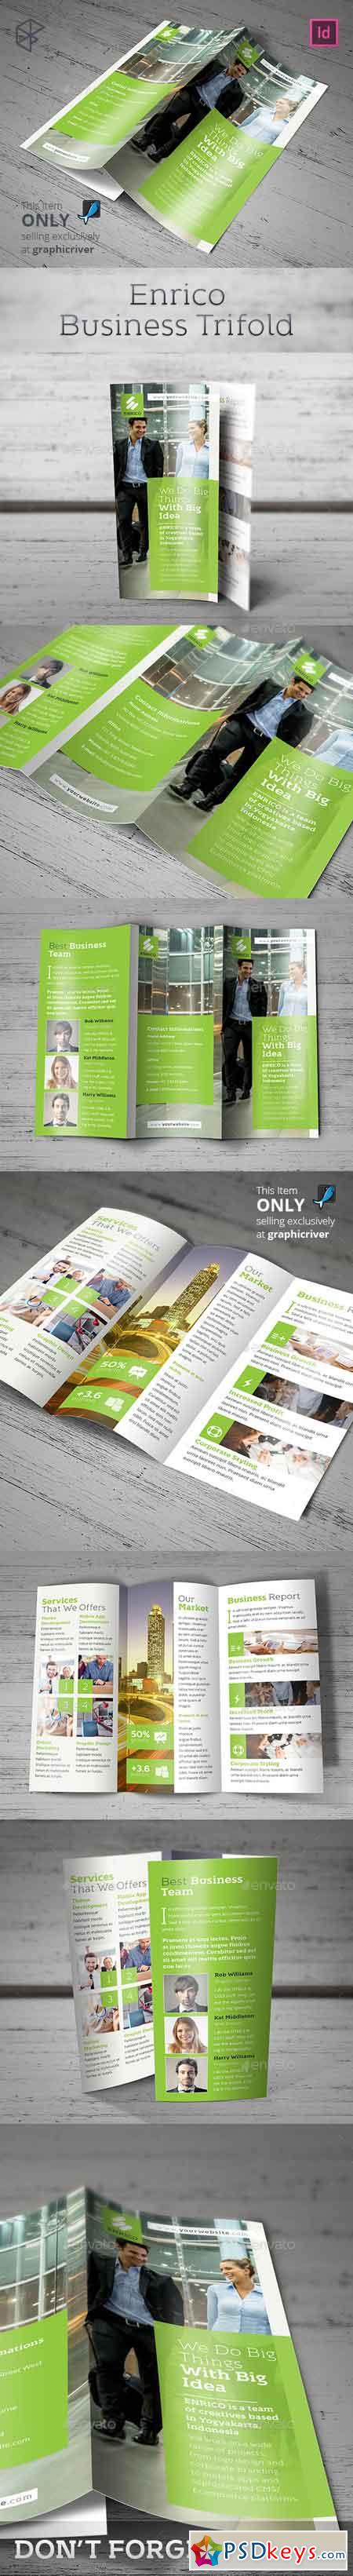 Enrico Business Trifold 13302864